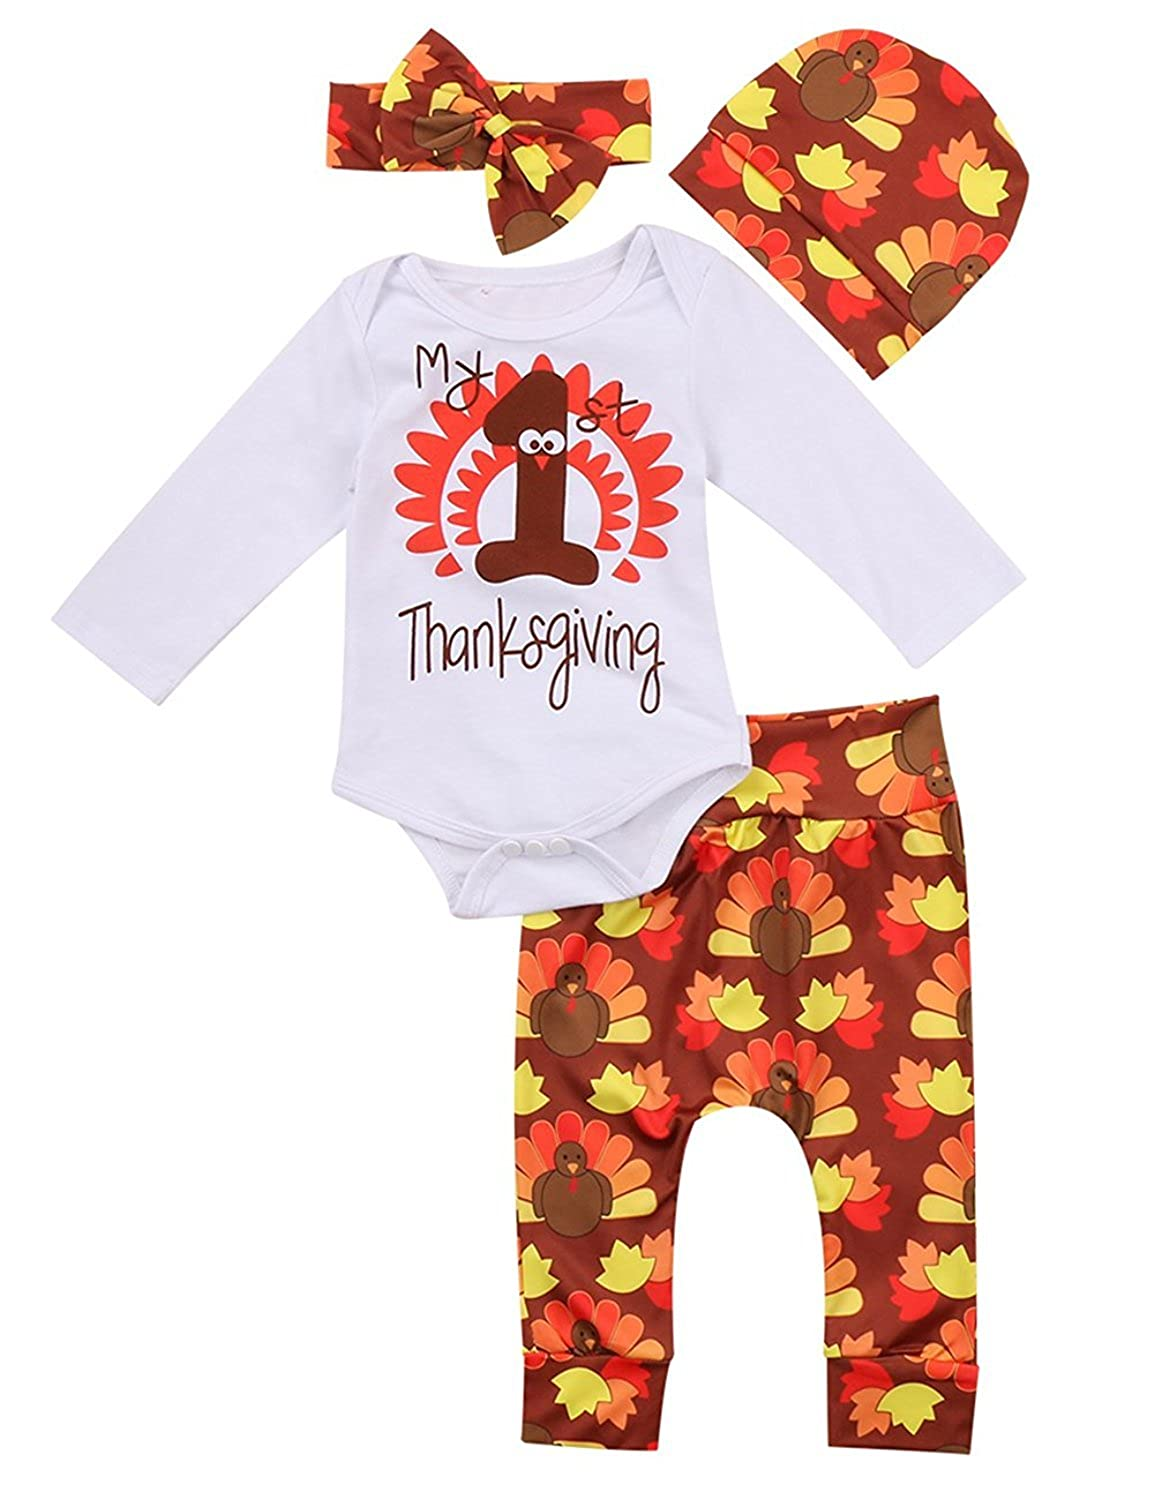 70f8c0ef7 Amazon.com: Thanksgiving Outfit Newborn Baby Boy Girl Letter Print Romper  Turkey Print Pant Hat Headband 4pcs Clothes Set: Clothing